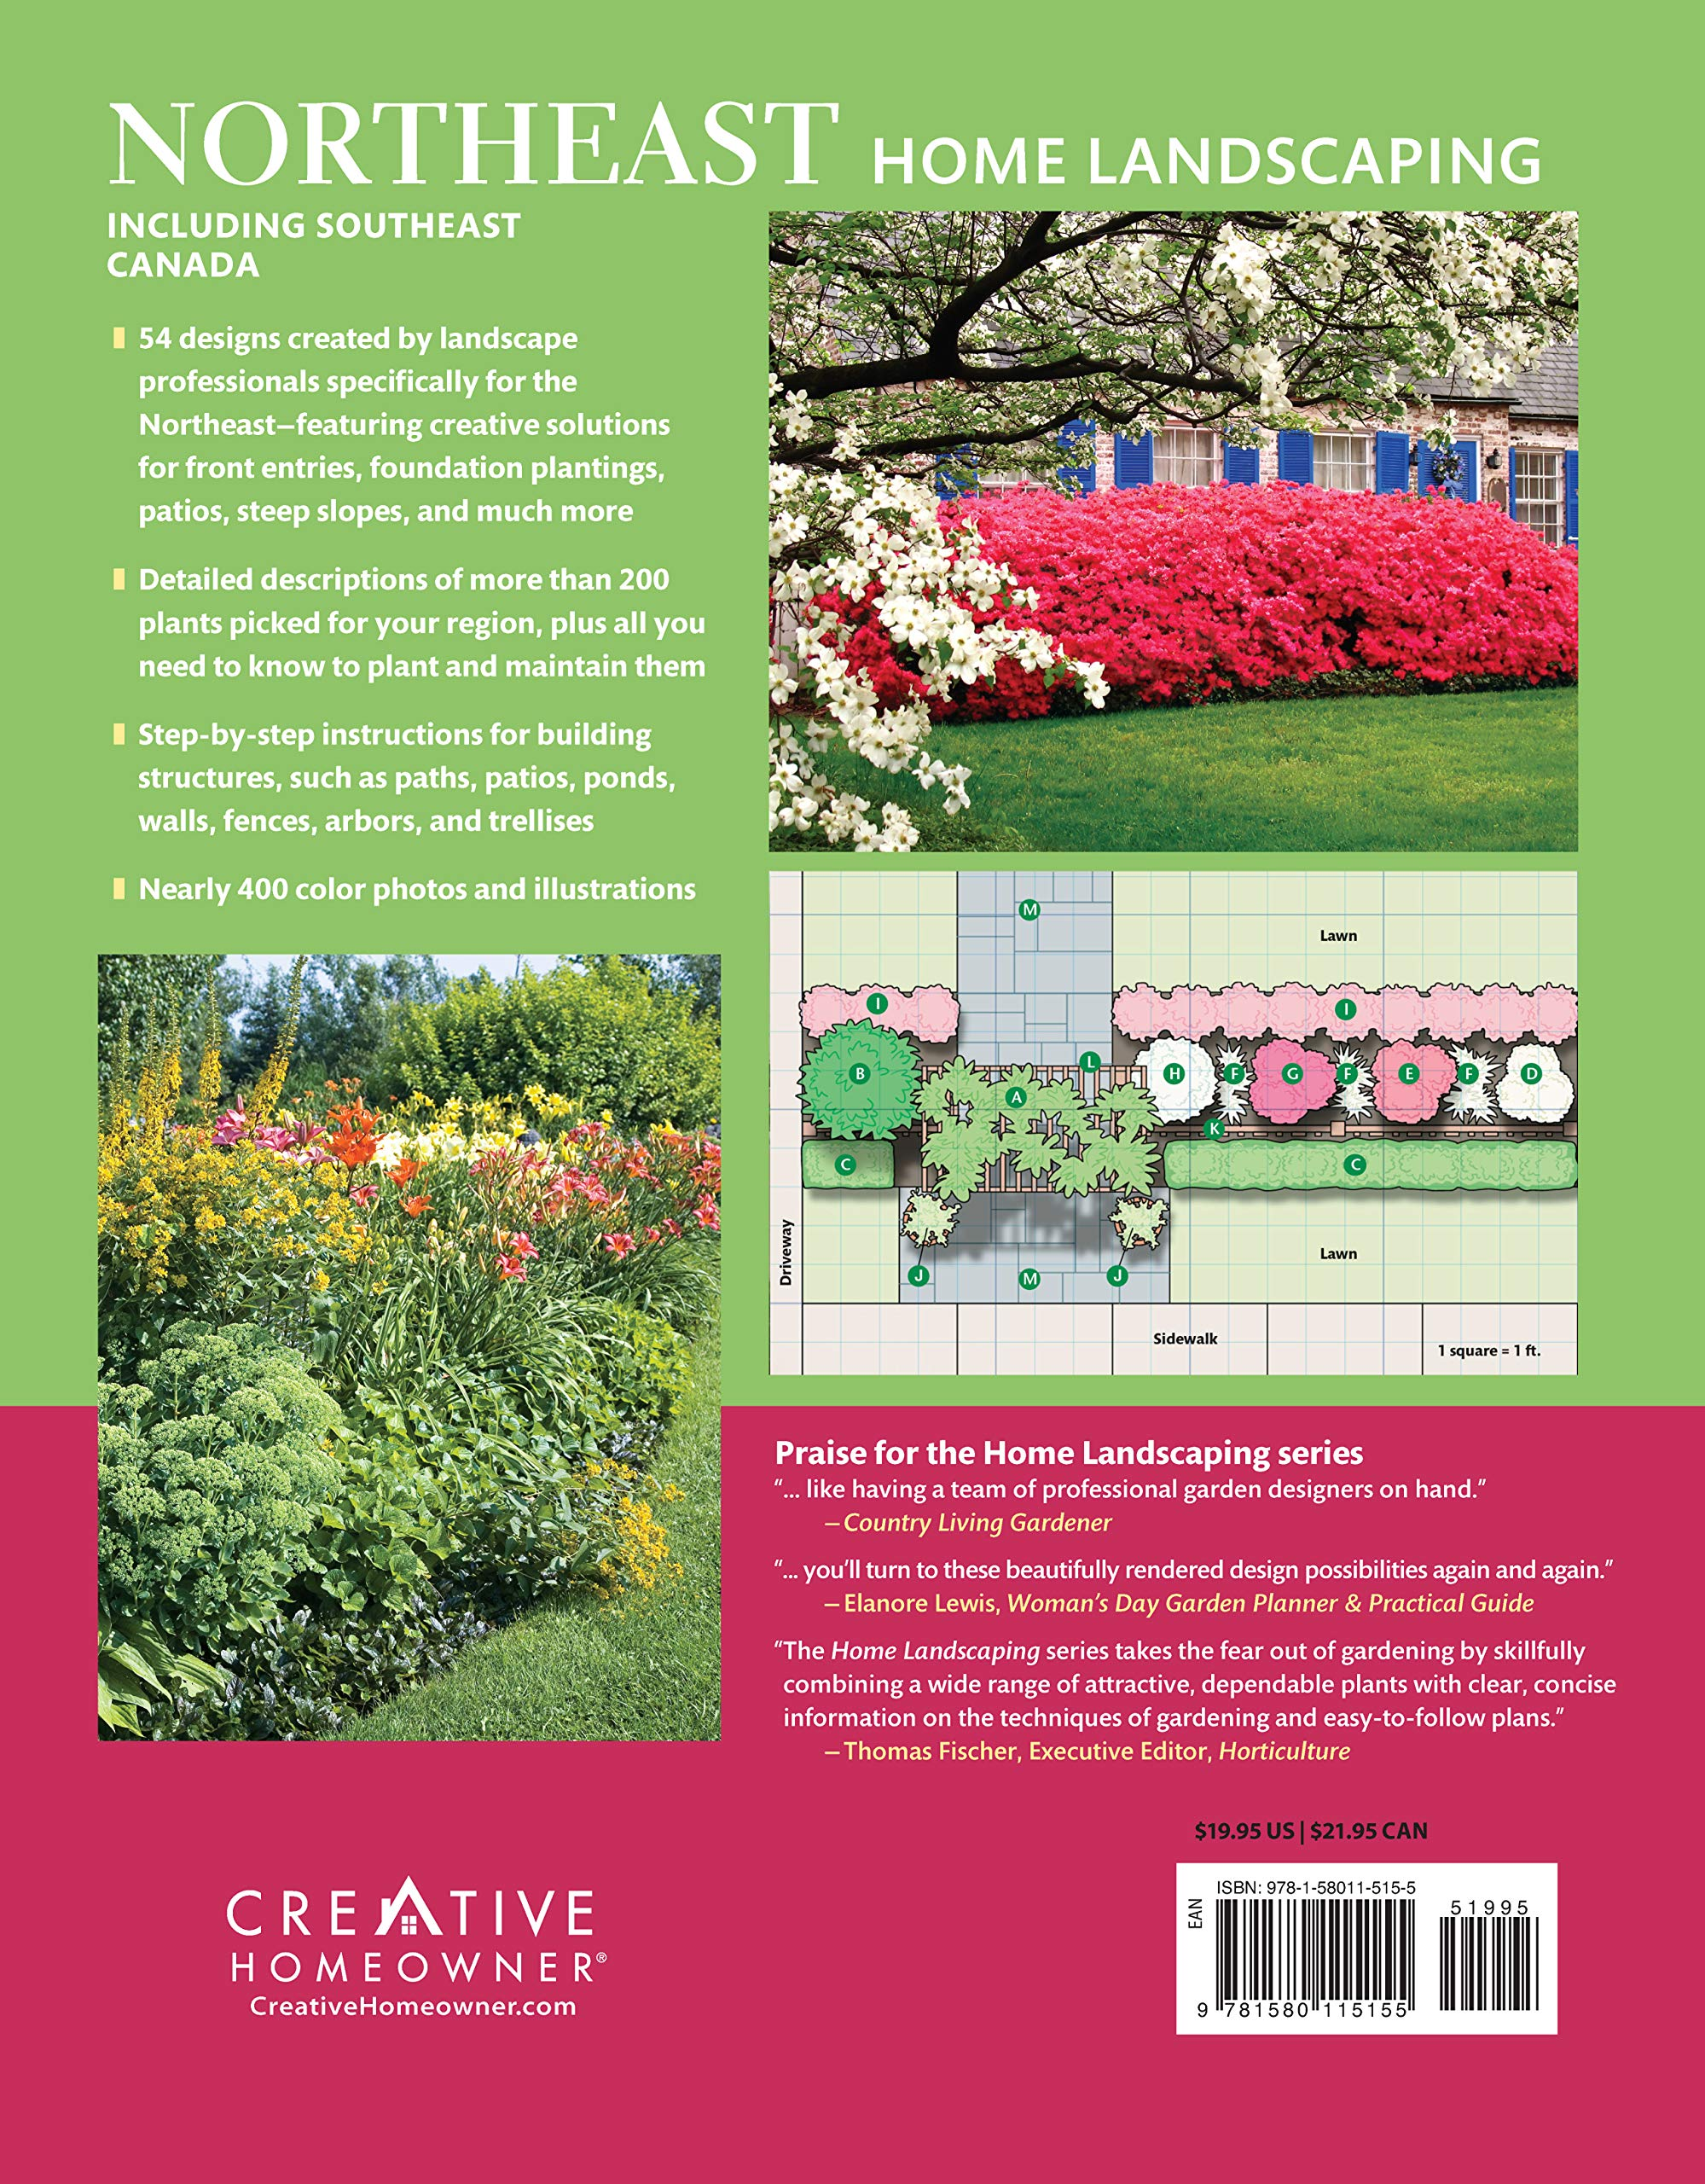 Northeast Home Landscaping 3rd Edition Including Southeast Canada Creative Homeowner 54 Landscape Designs 200 Plants Flowers Best Suited To Ct Ma Me Nh Ny Ri Vt Nb Ns On Pe